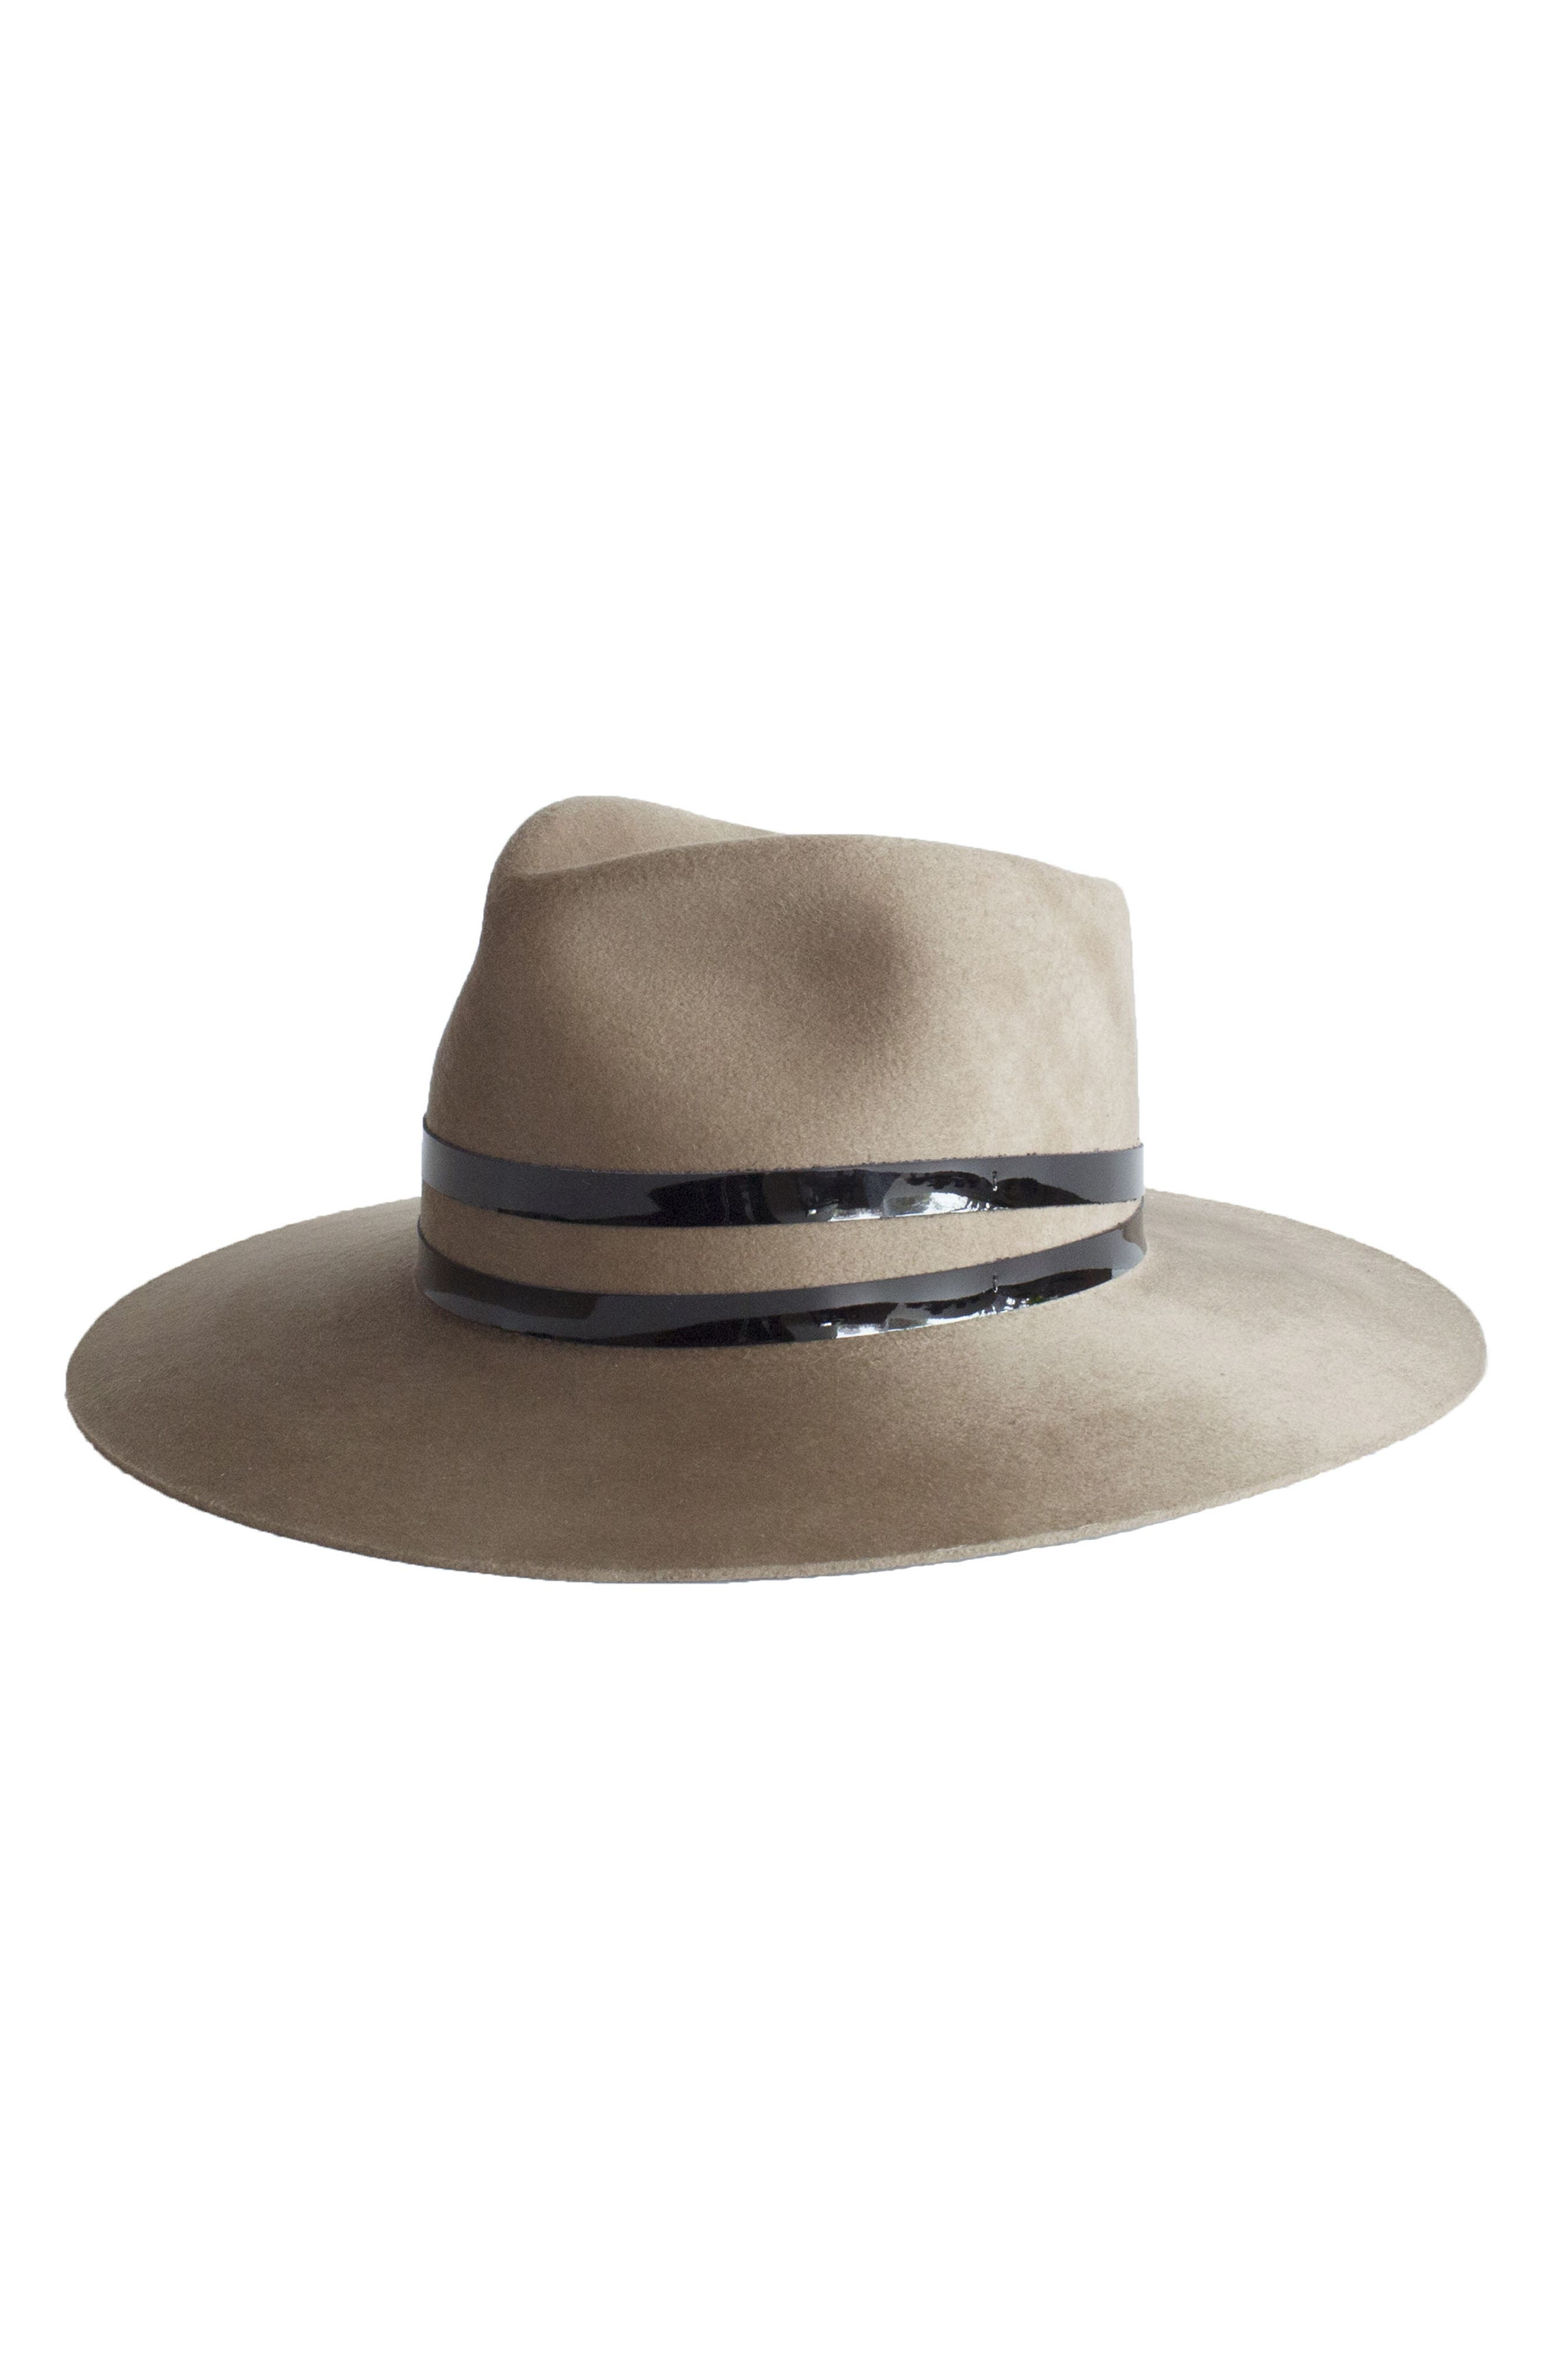 Janessa Leone Addison Wool Hat